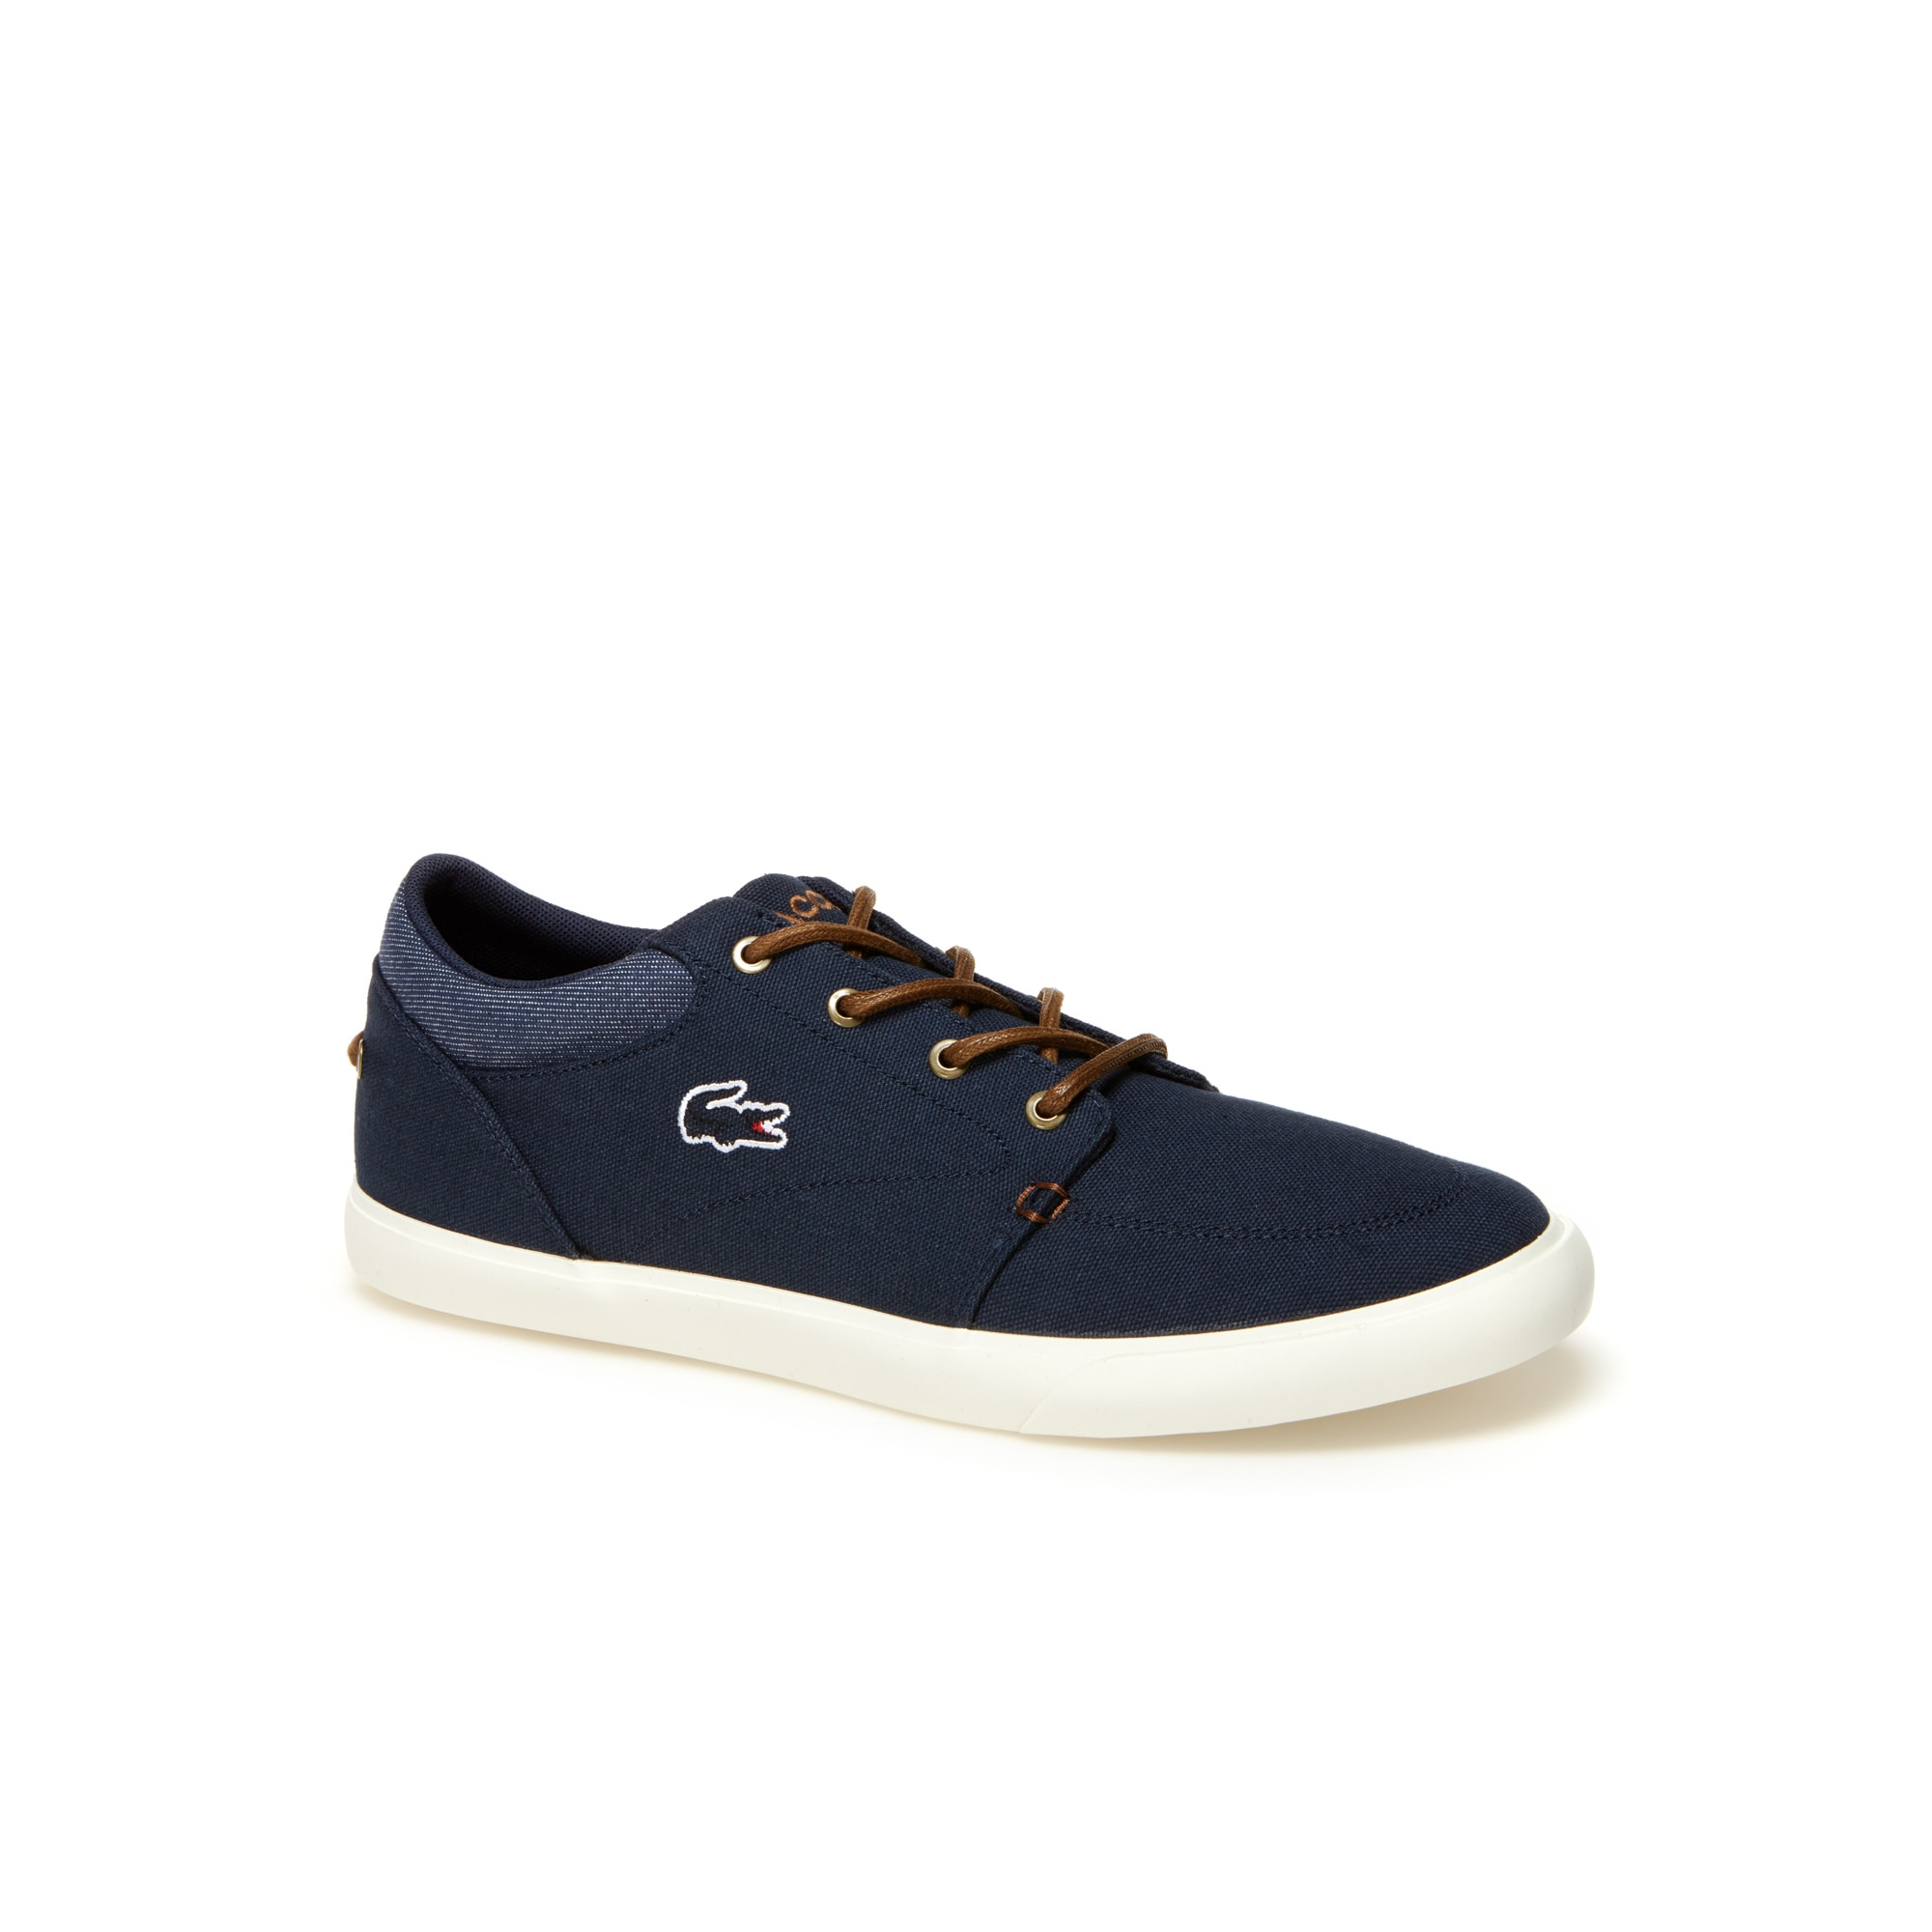 Sneakers Bayliss Vulc en toile